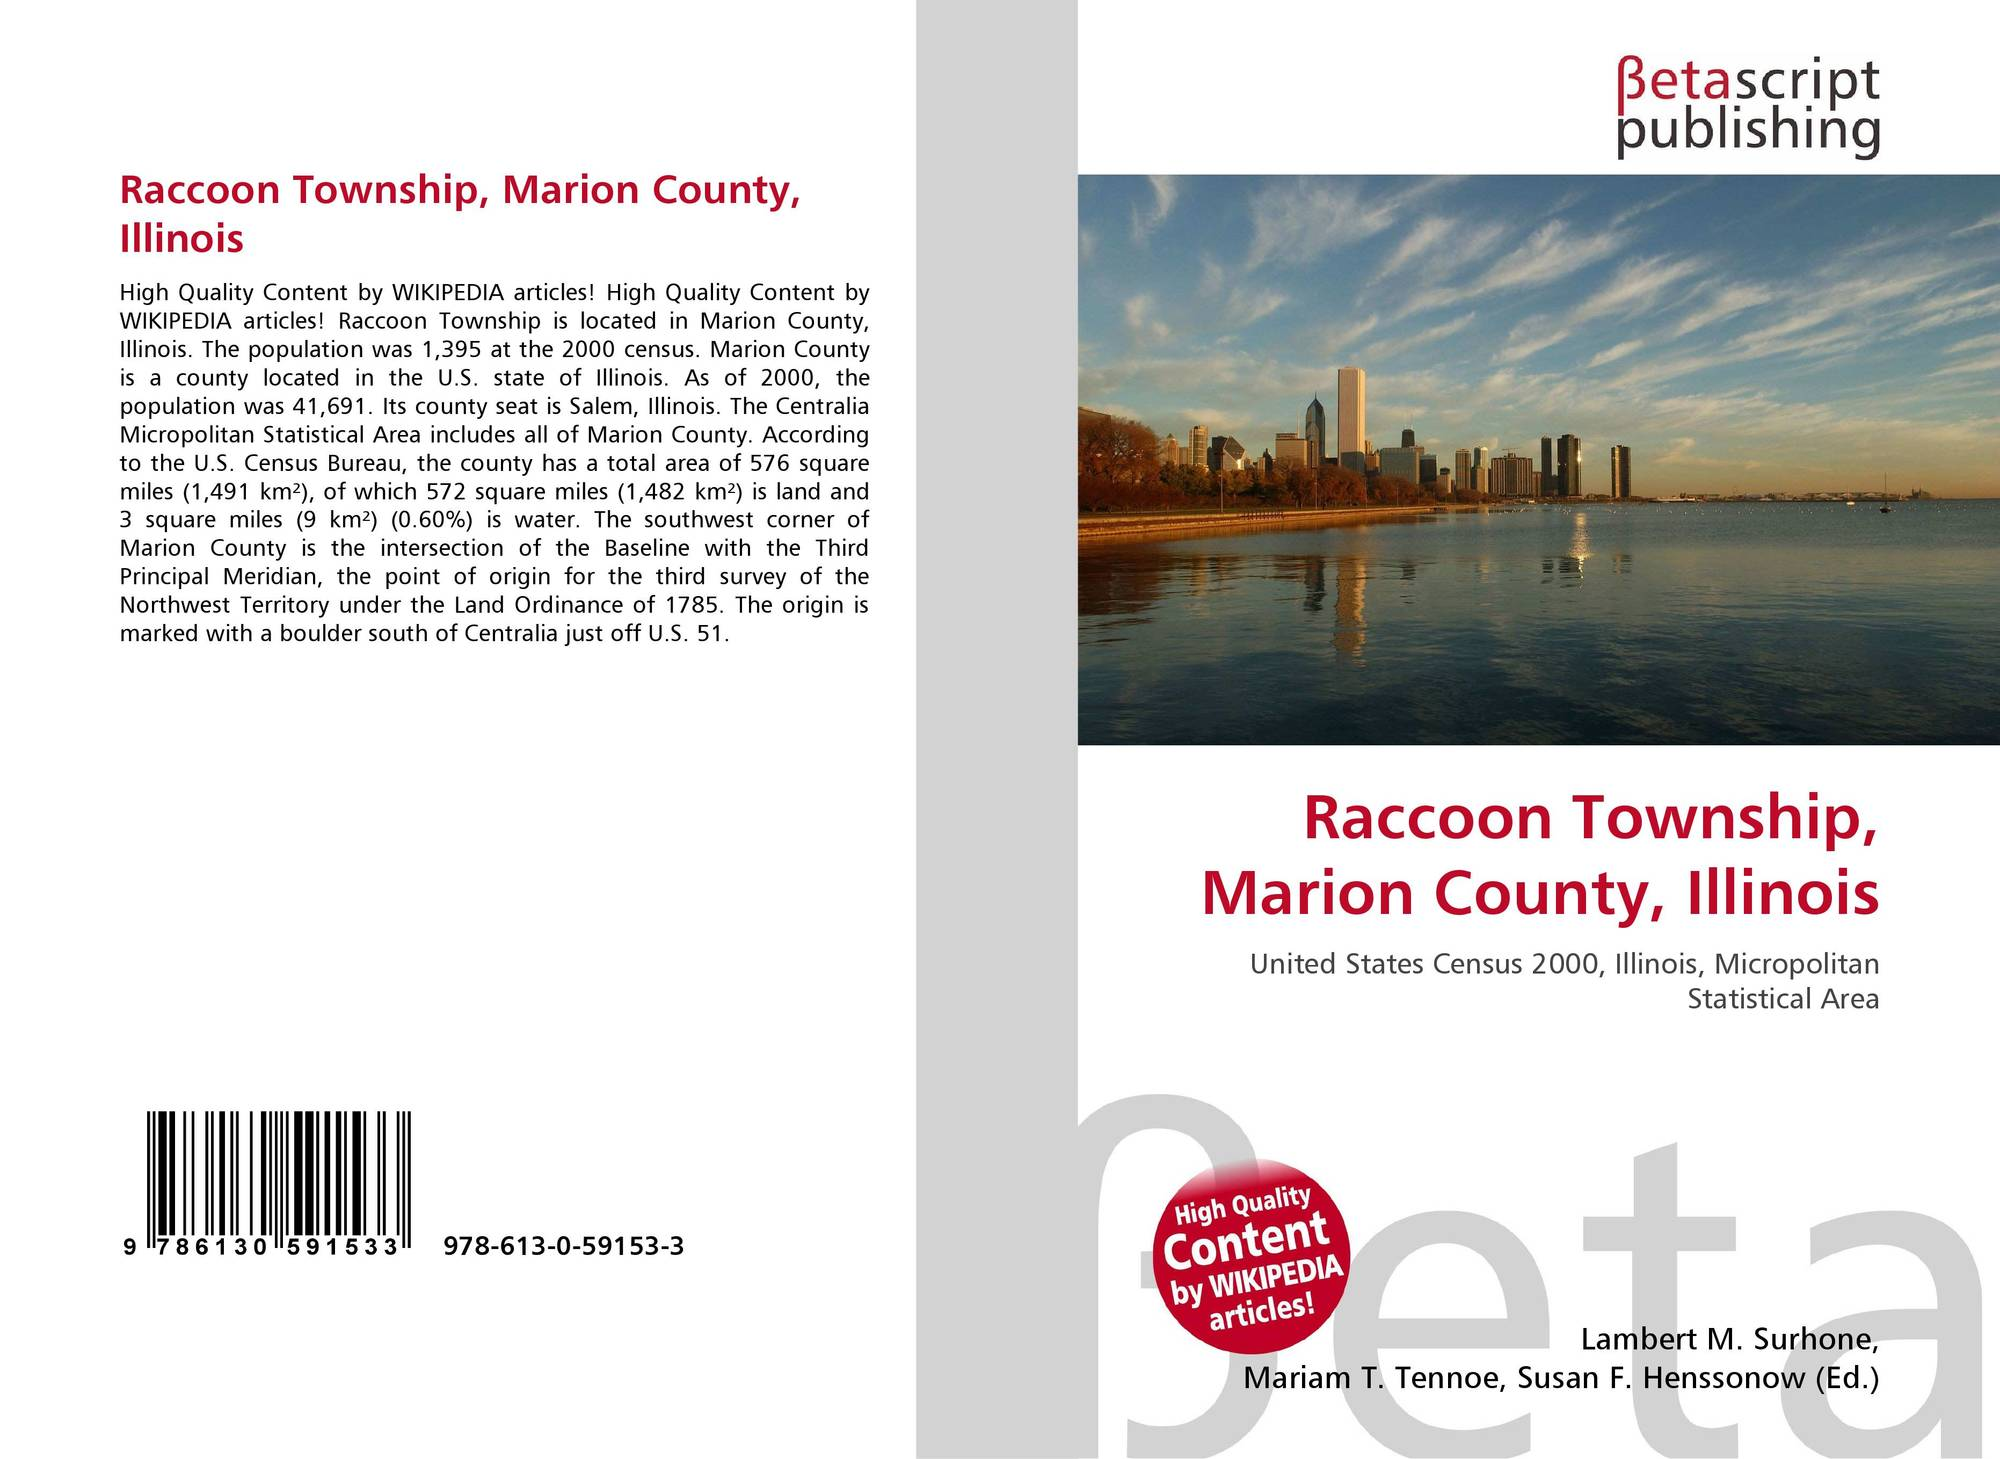 Illinois marion county centralia - Bookcover Of Raccoon Township Marion County Illinois Omni Badge 9307e2201e5f762643a64561af3456be64a87707602f96b92ef18a9bbcada116